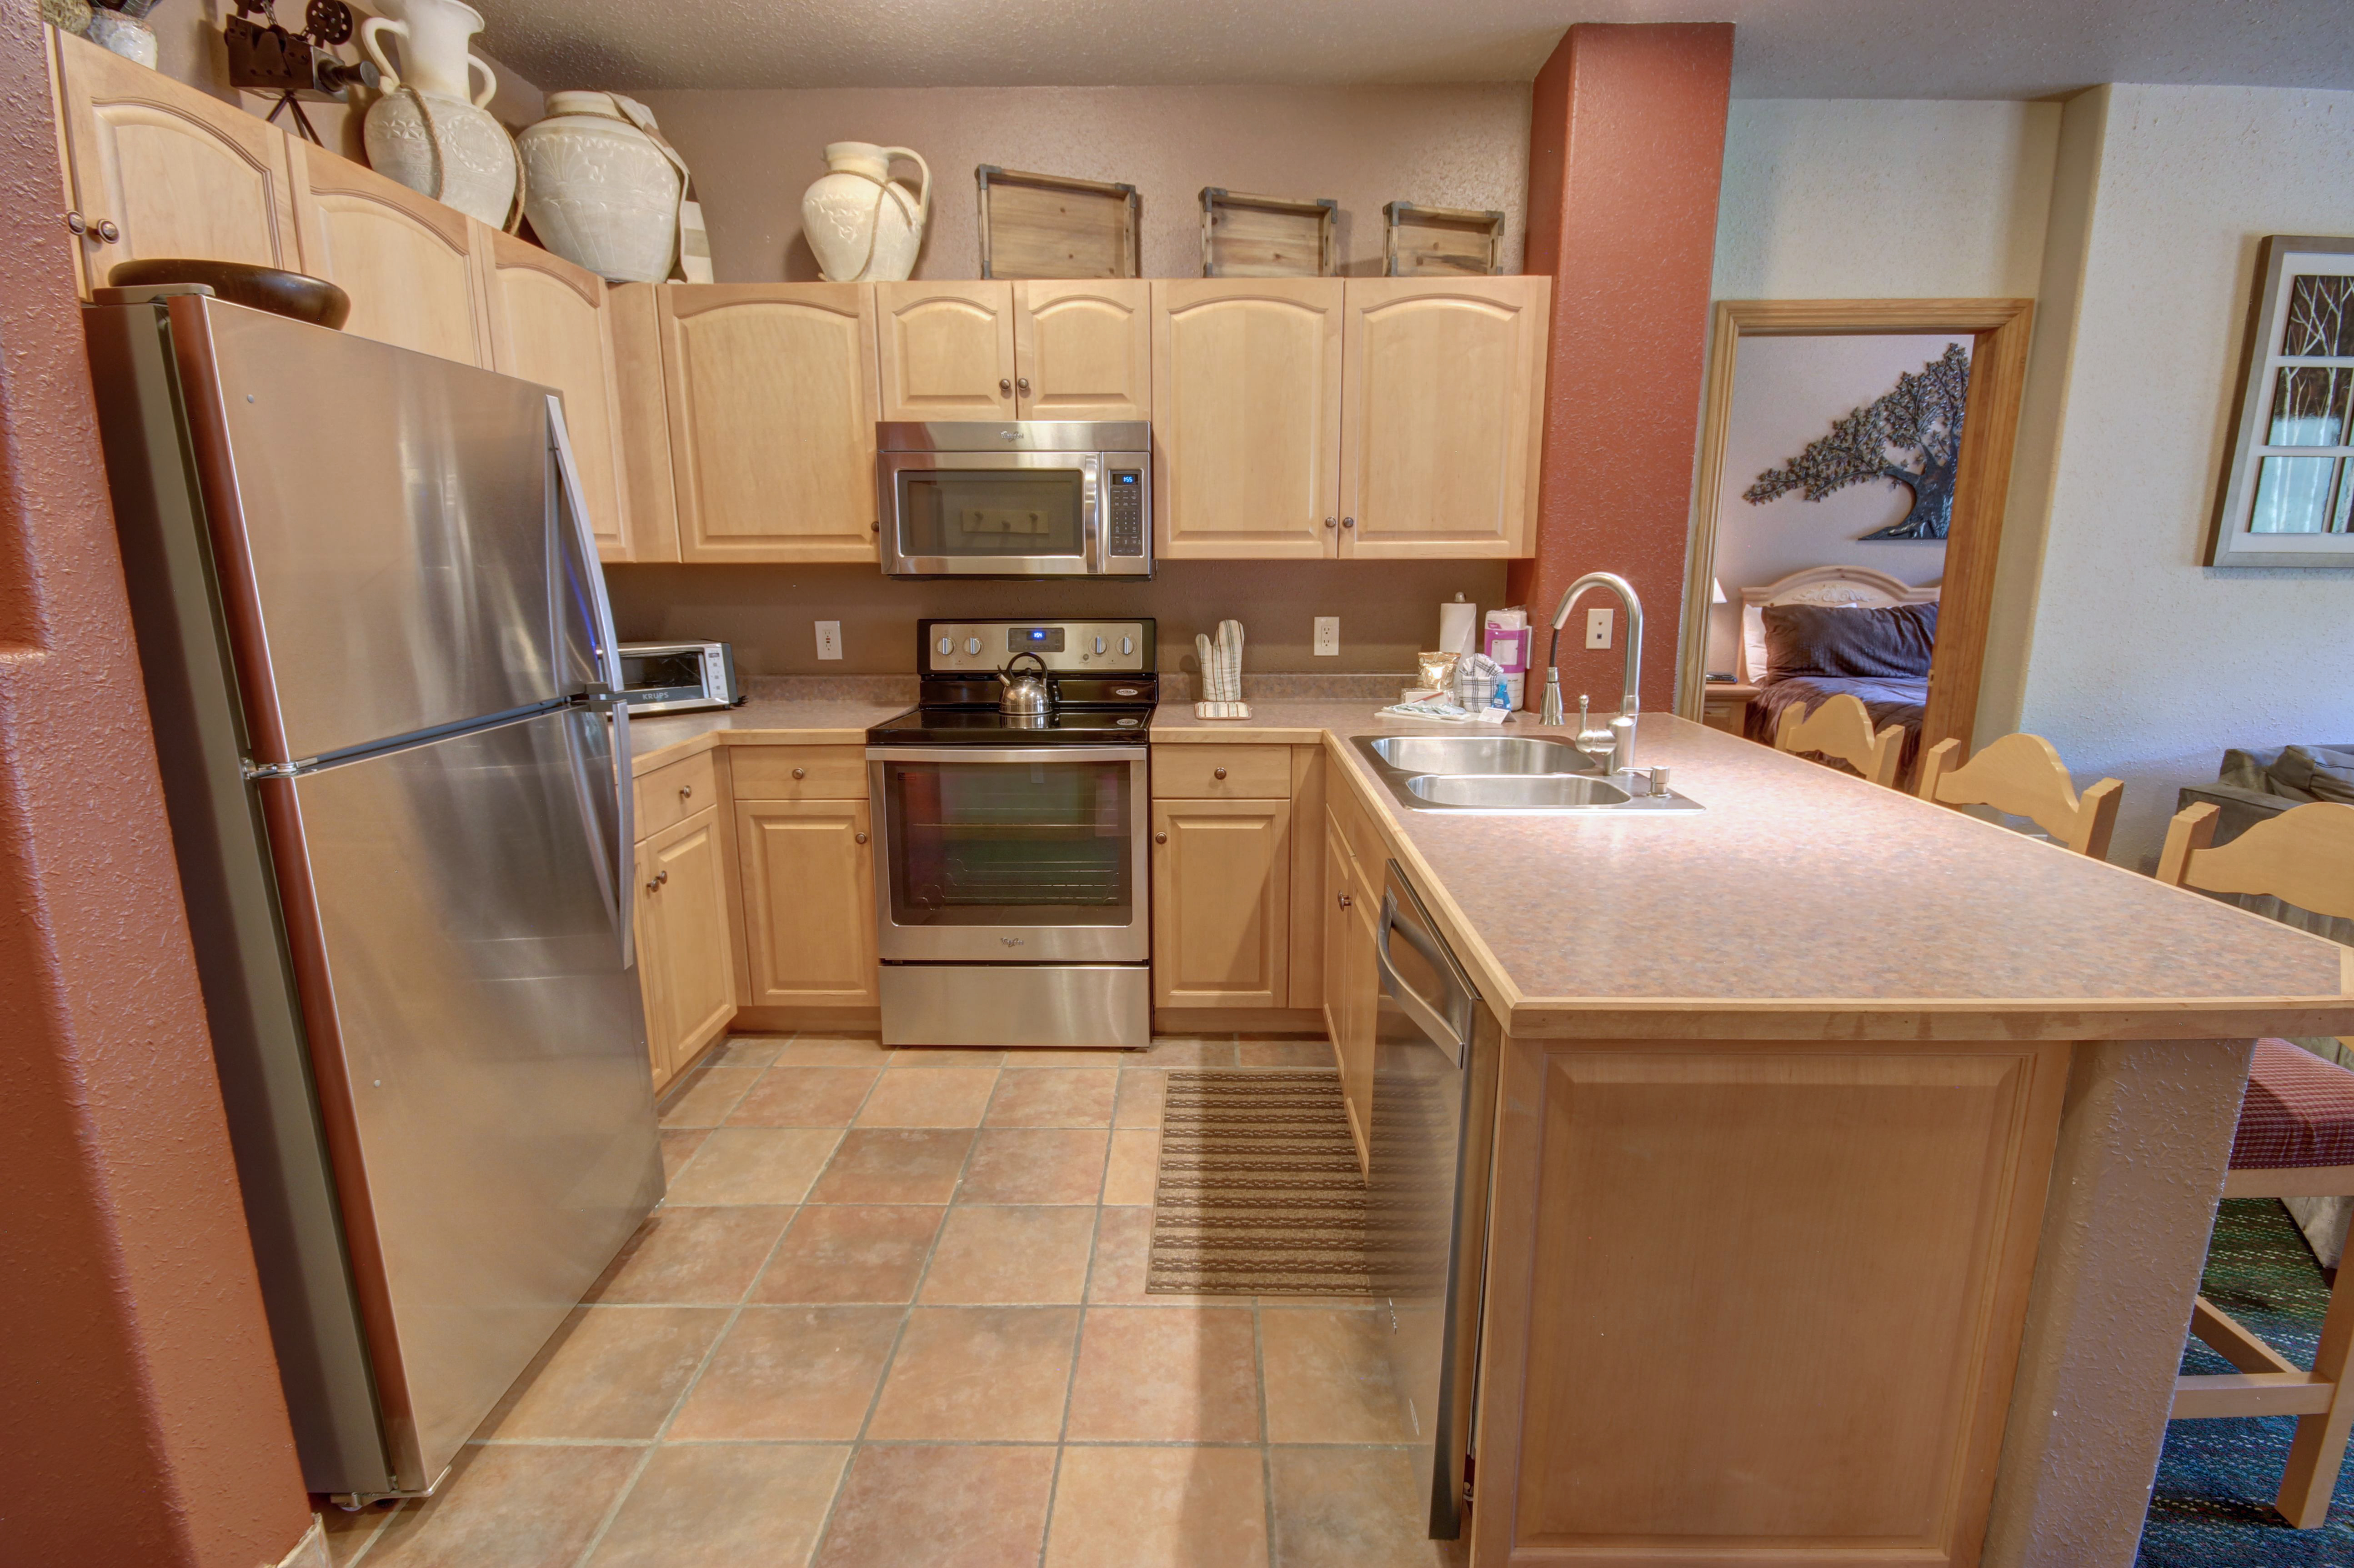 Nice open kitchen with plenty of space for making your favorite foods